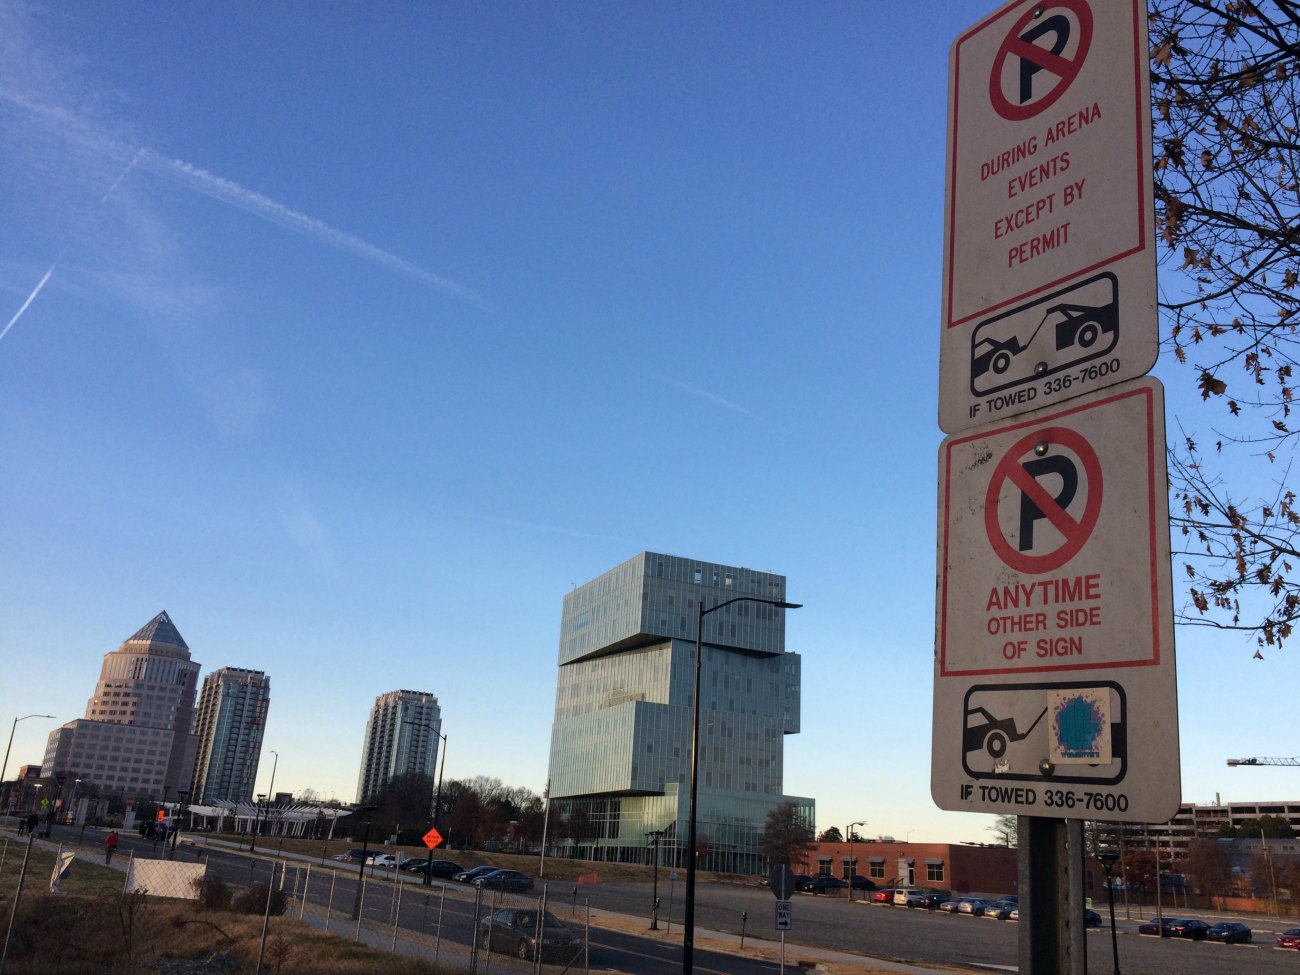 Where to find free parking in Uptown Charlotte